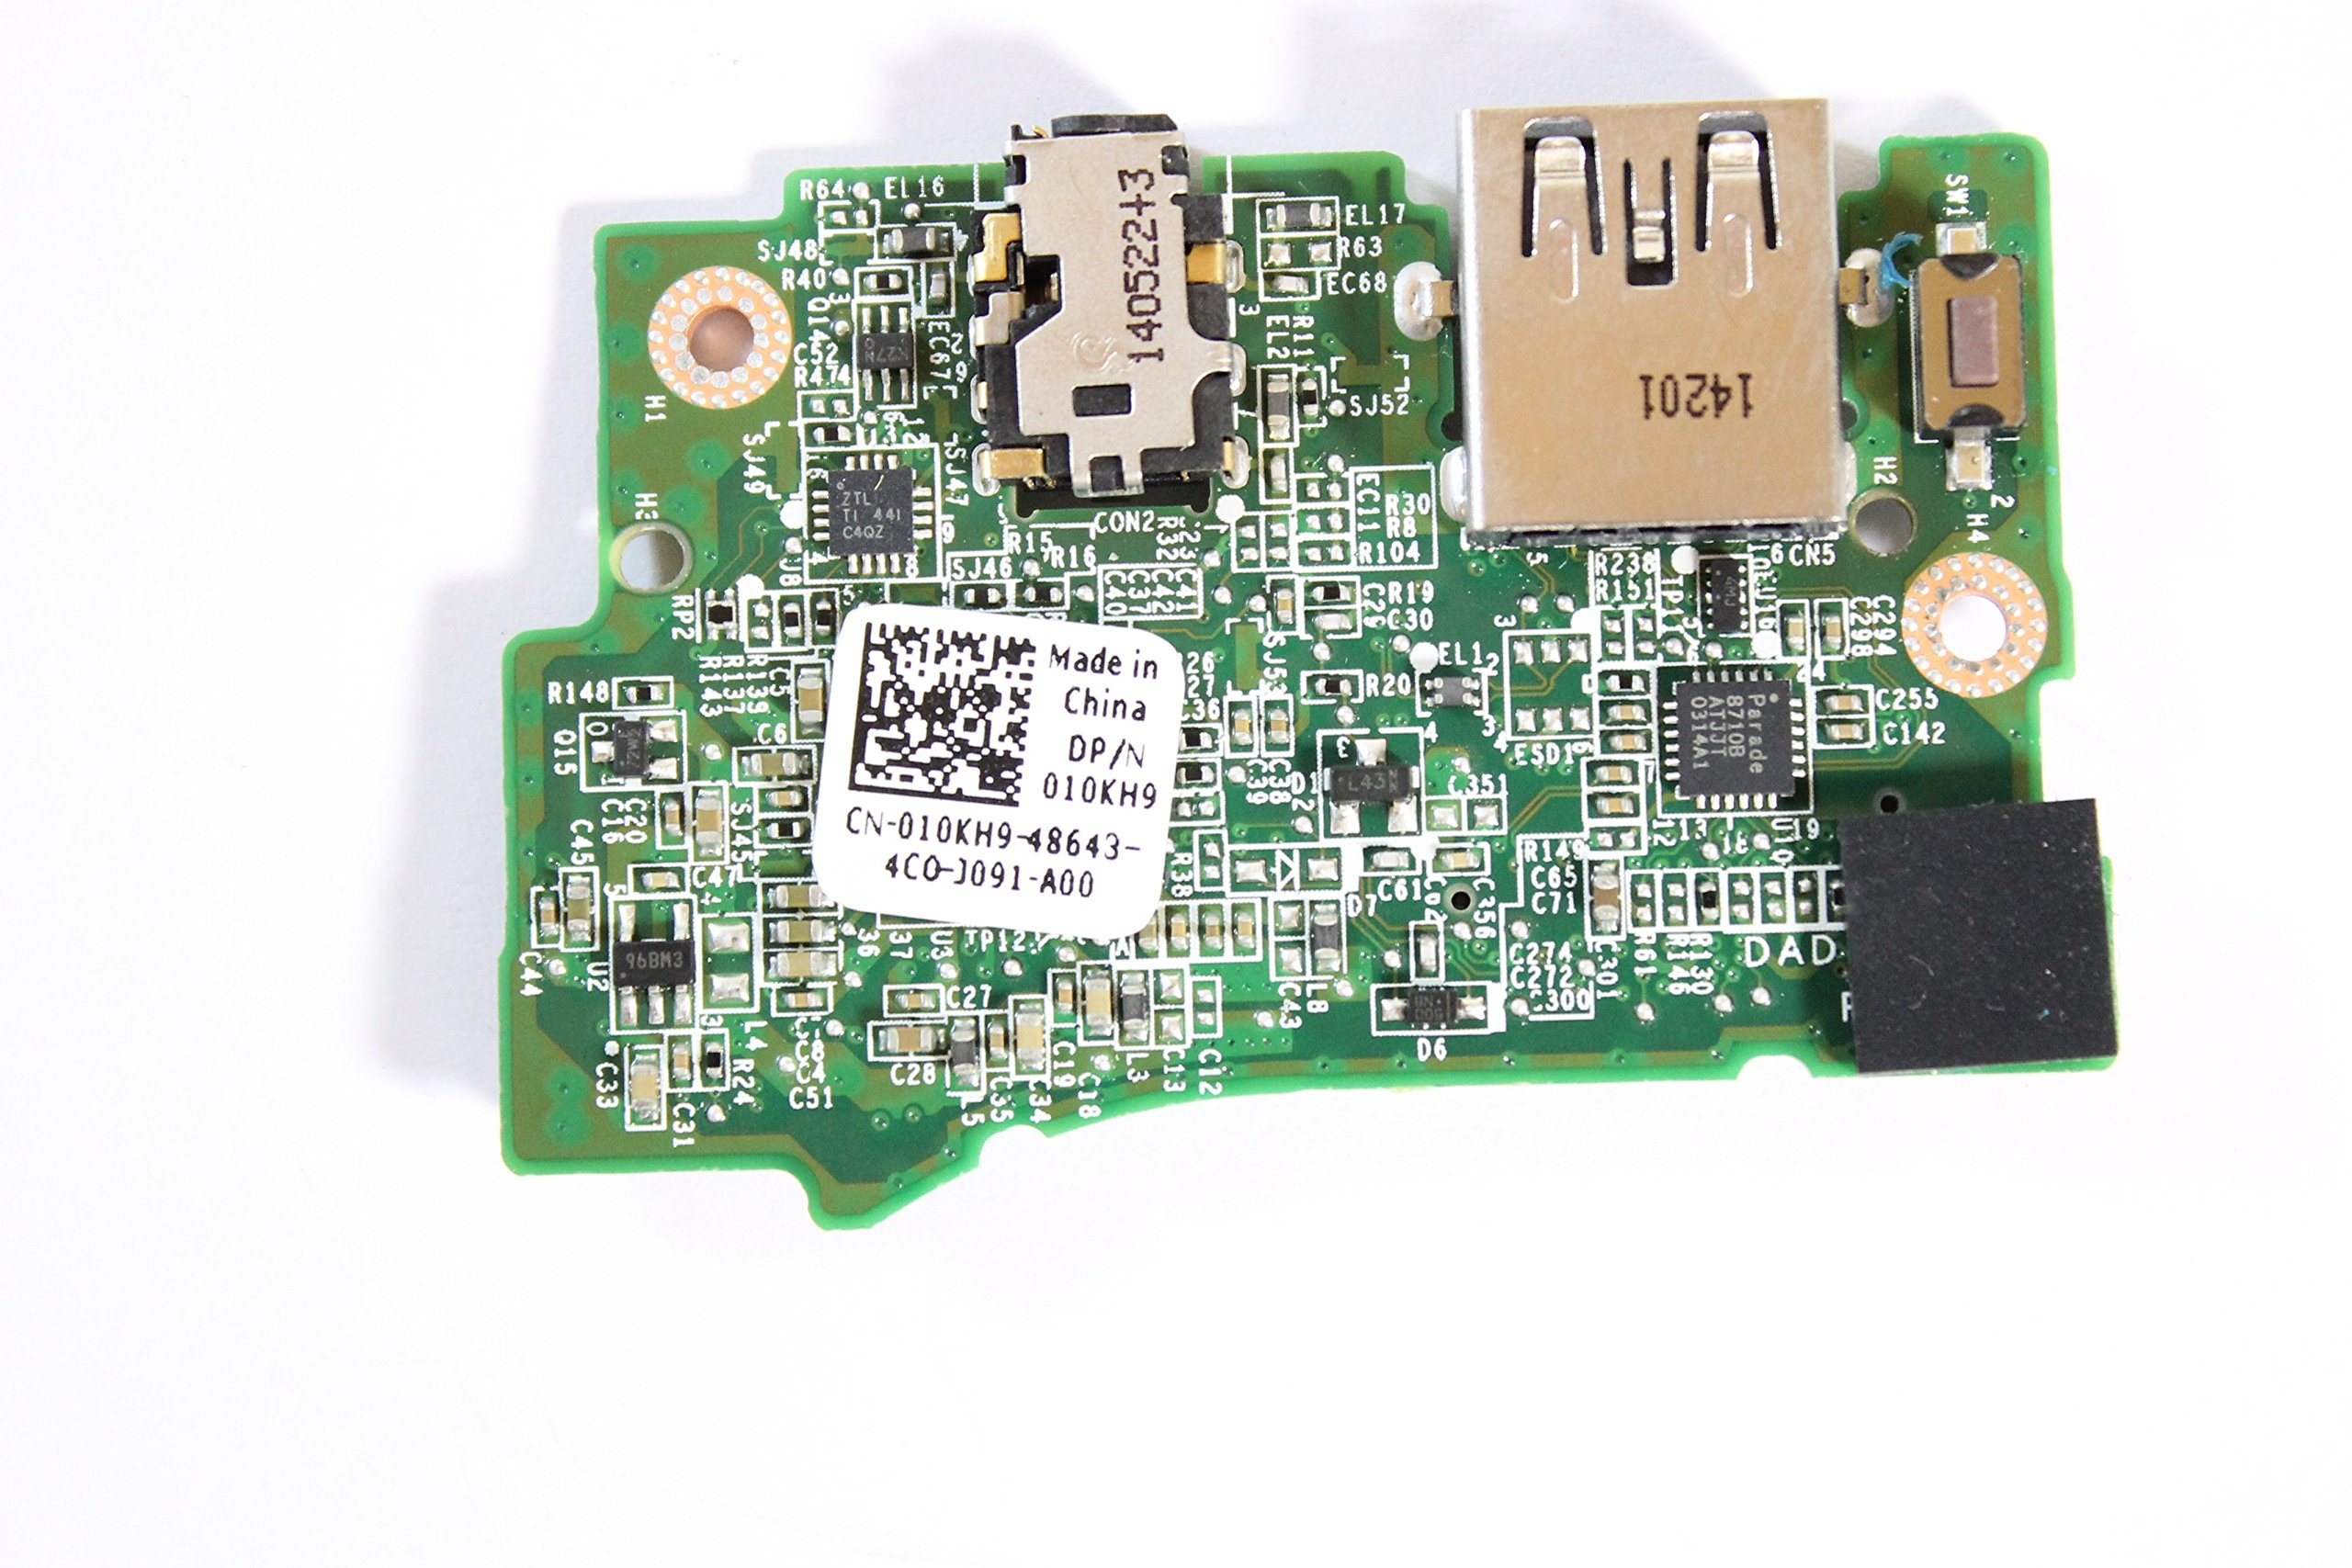 Dell XPS L322X 10KH9 USB 3.0 Audio Power Button Board DAD13AAB8E1 by Dell (Image #3)